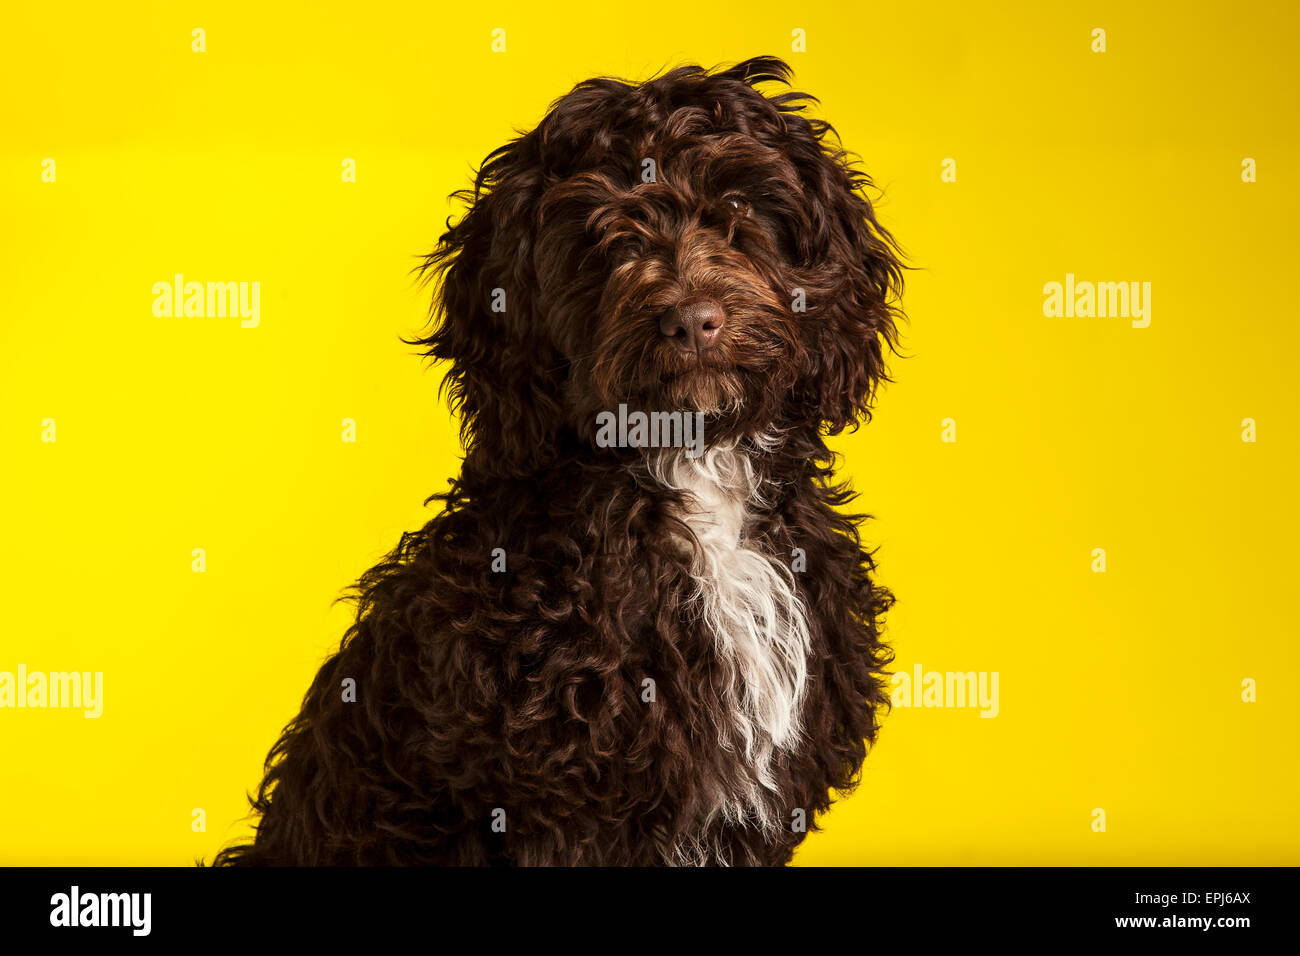 Cockerpoo cross bred dog (Spaniel cross poodle) - Stock Image